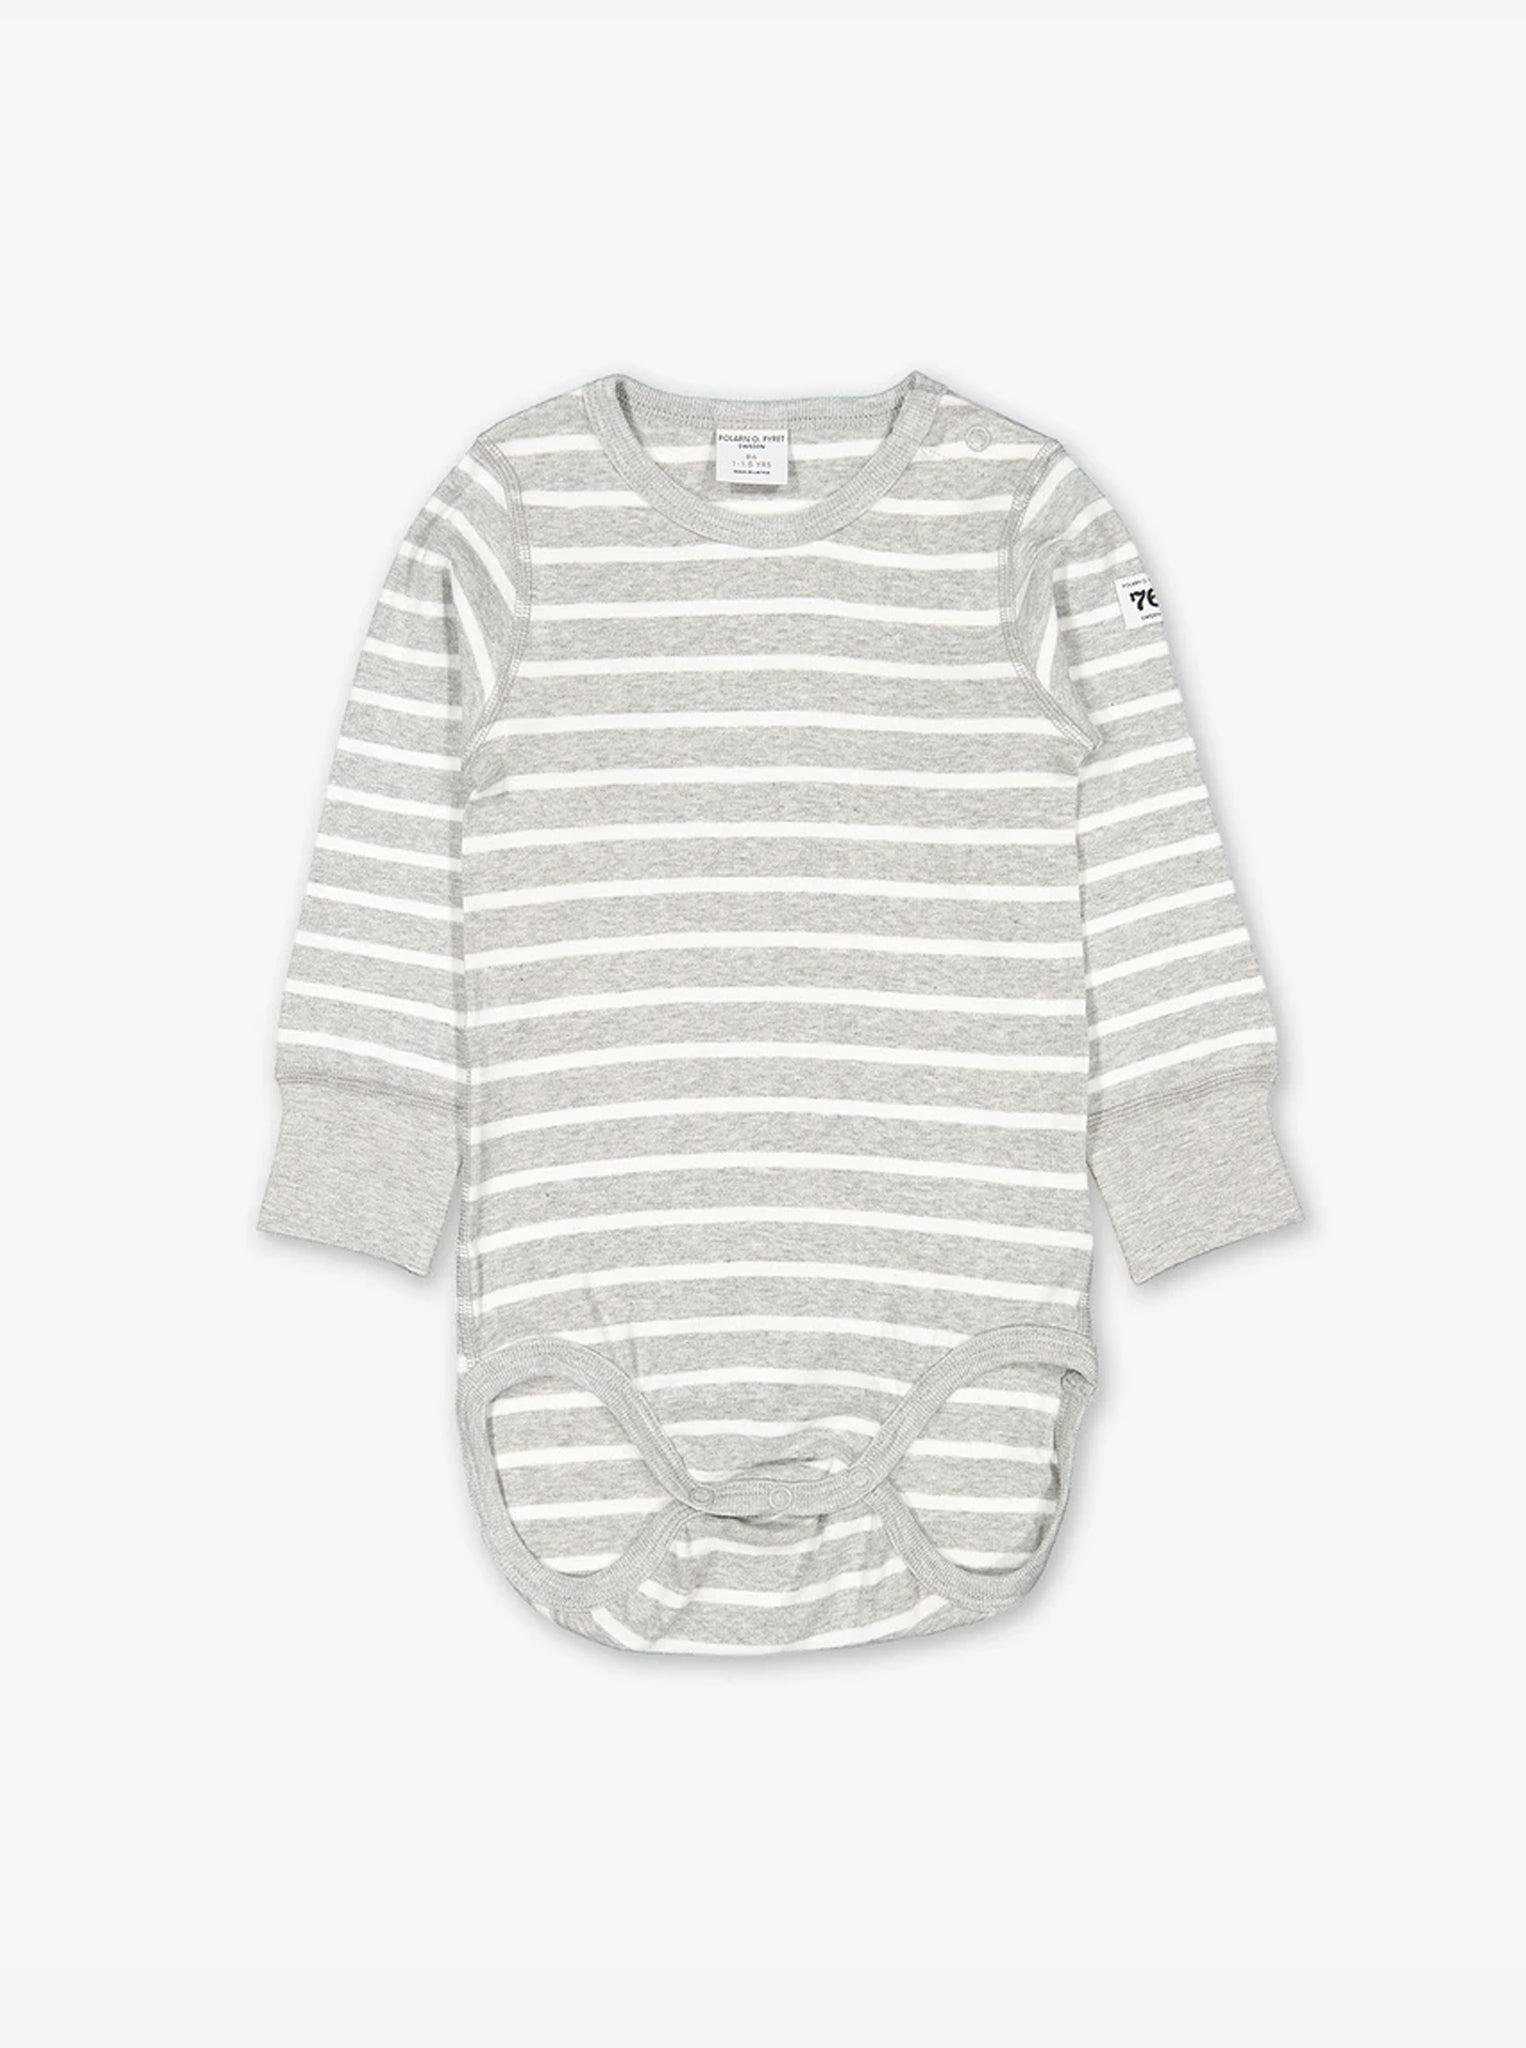 Front view of a grey and white stripe print bodysuit for babies and toddlers; a stylish staple made from 100% soft organic cotton.